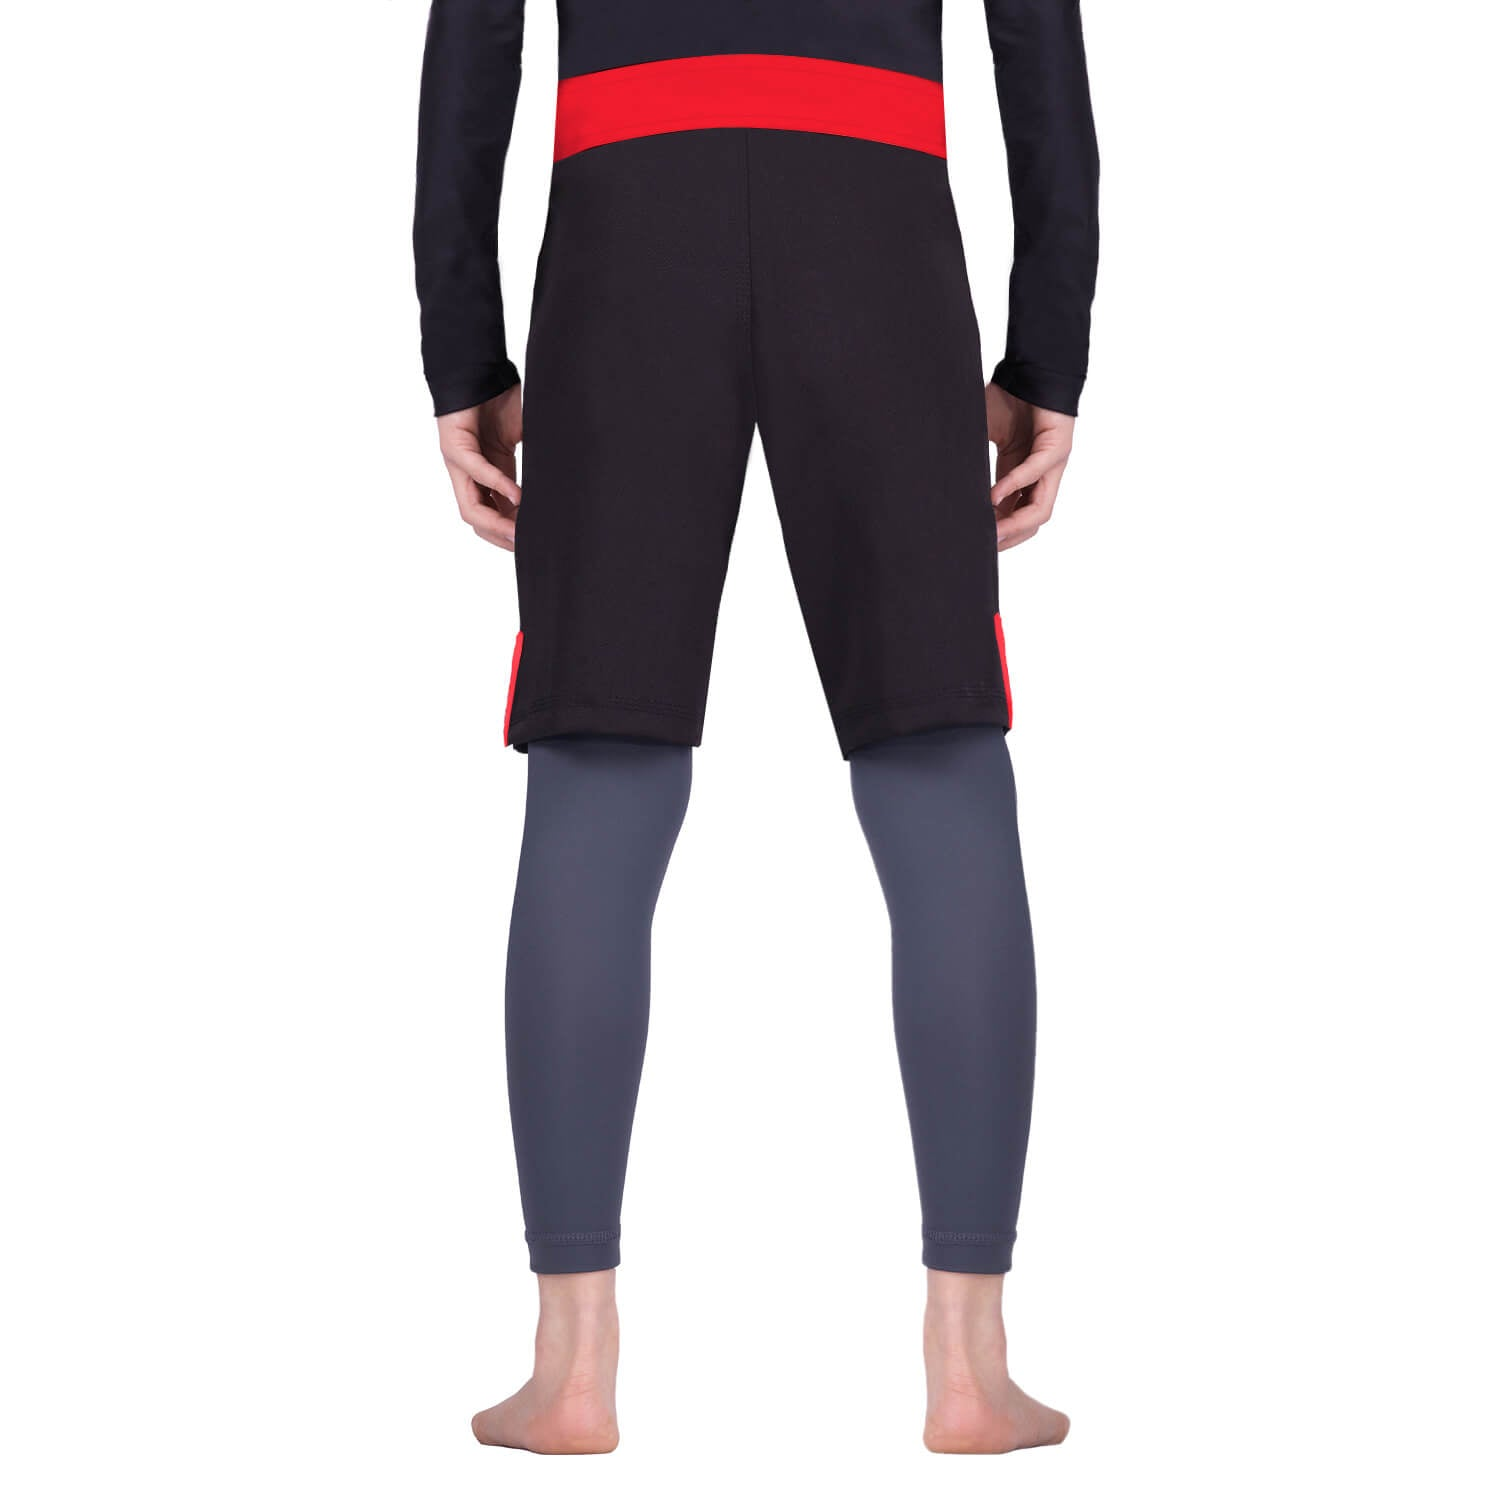 Load image into Gallery viewer, Elite Sports Jack Series Black/Red Kids Bjj NO-GI Shorts